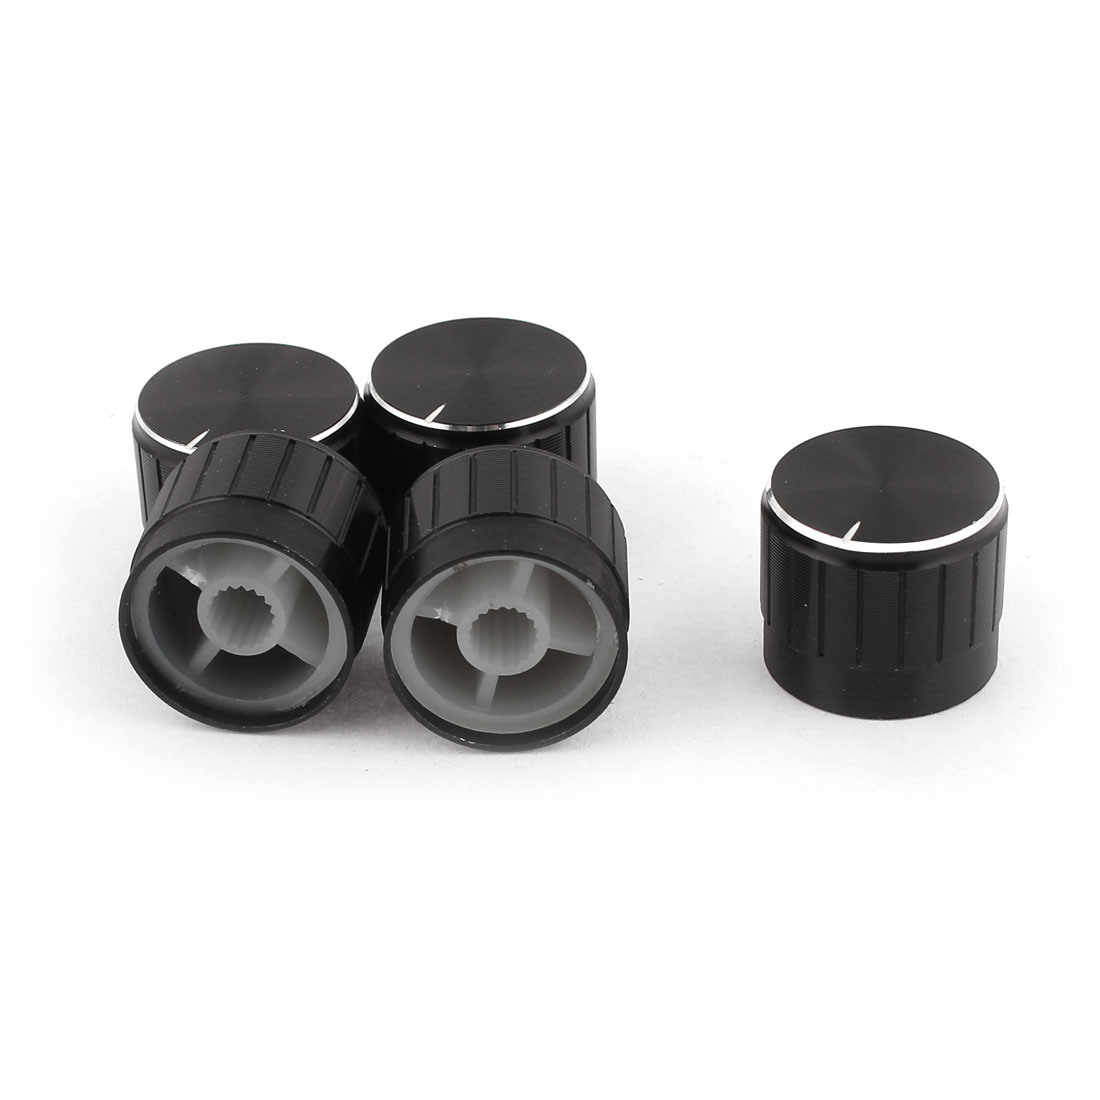 4 Pcs Black Silver Tone Plastic Potentiometer Rotary Control Knobs Caps 17x20mm